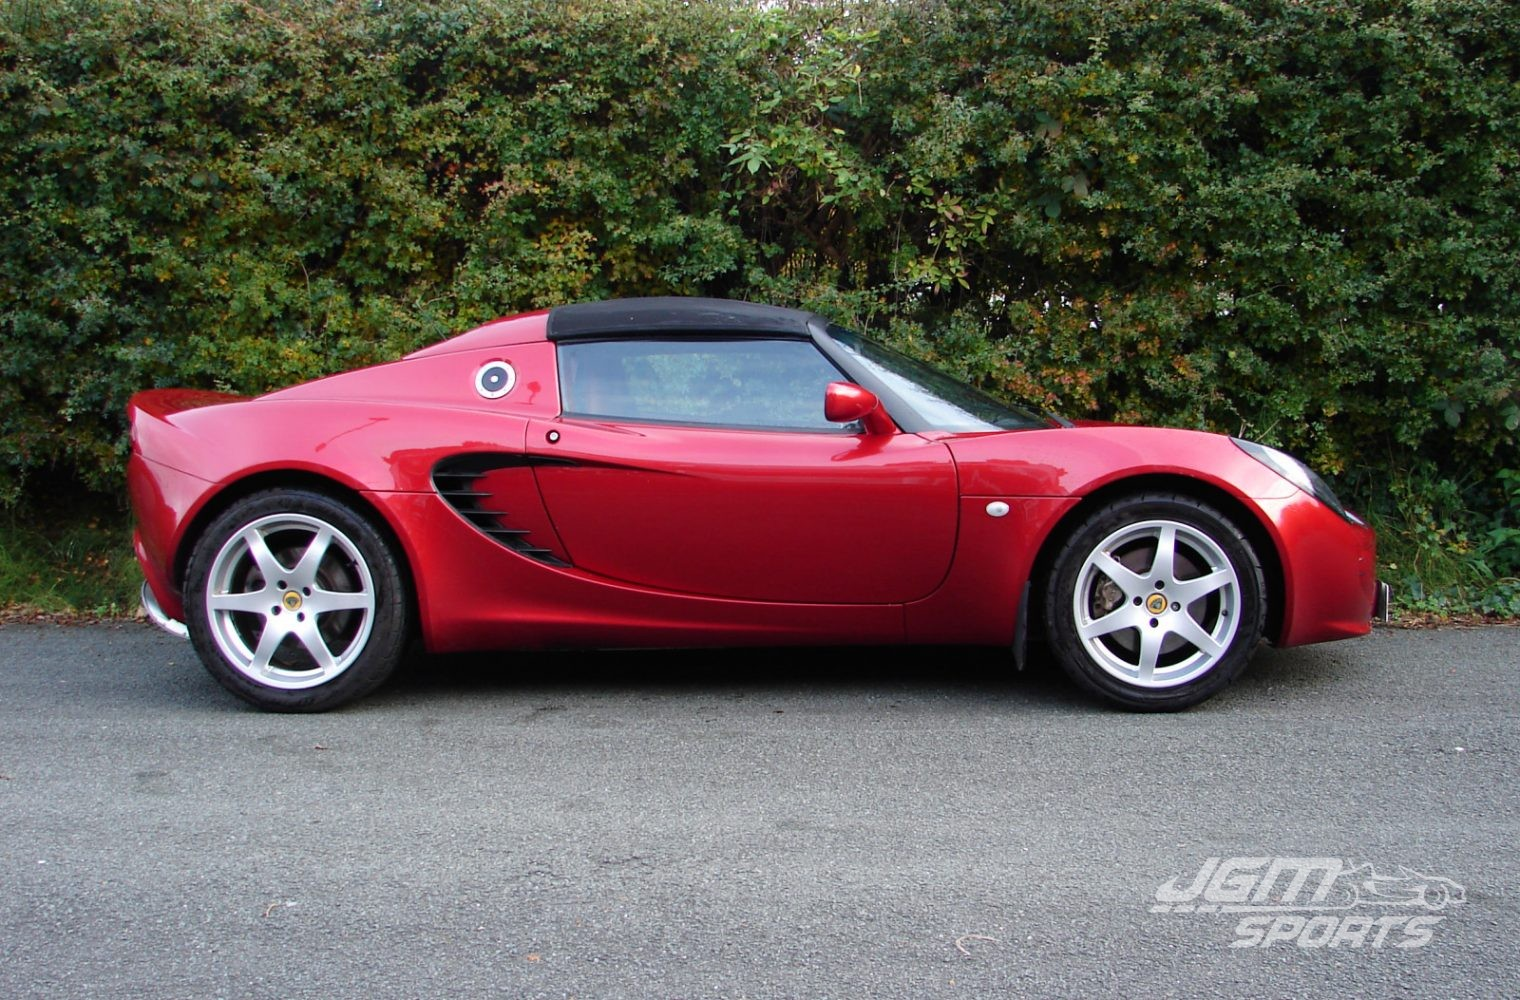 Cars for sale jgmsports sold 2002 s2 lotus elise metallic ruby red short roof lotus trim shop interior only 36k miles vanachro Image collections